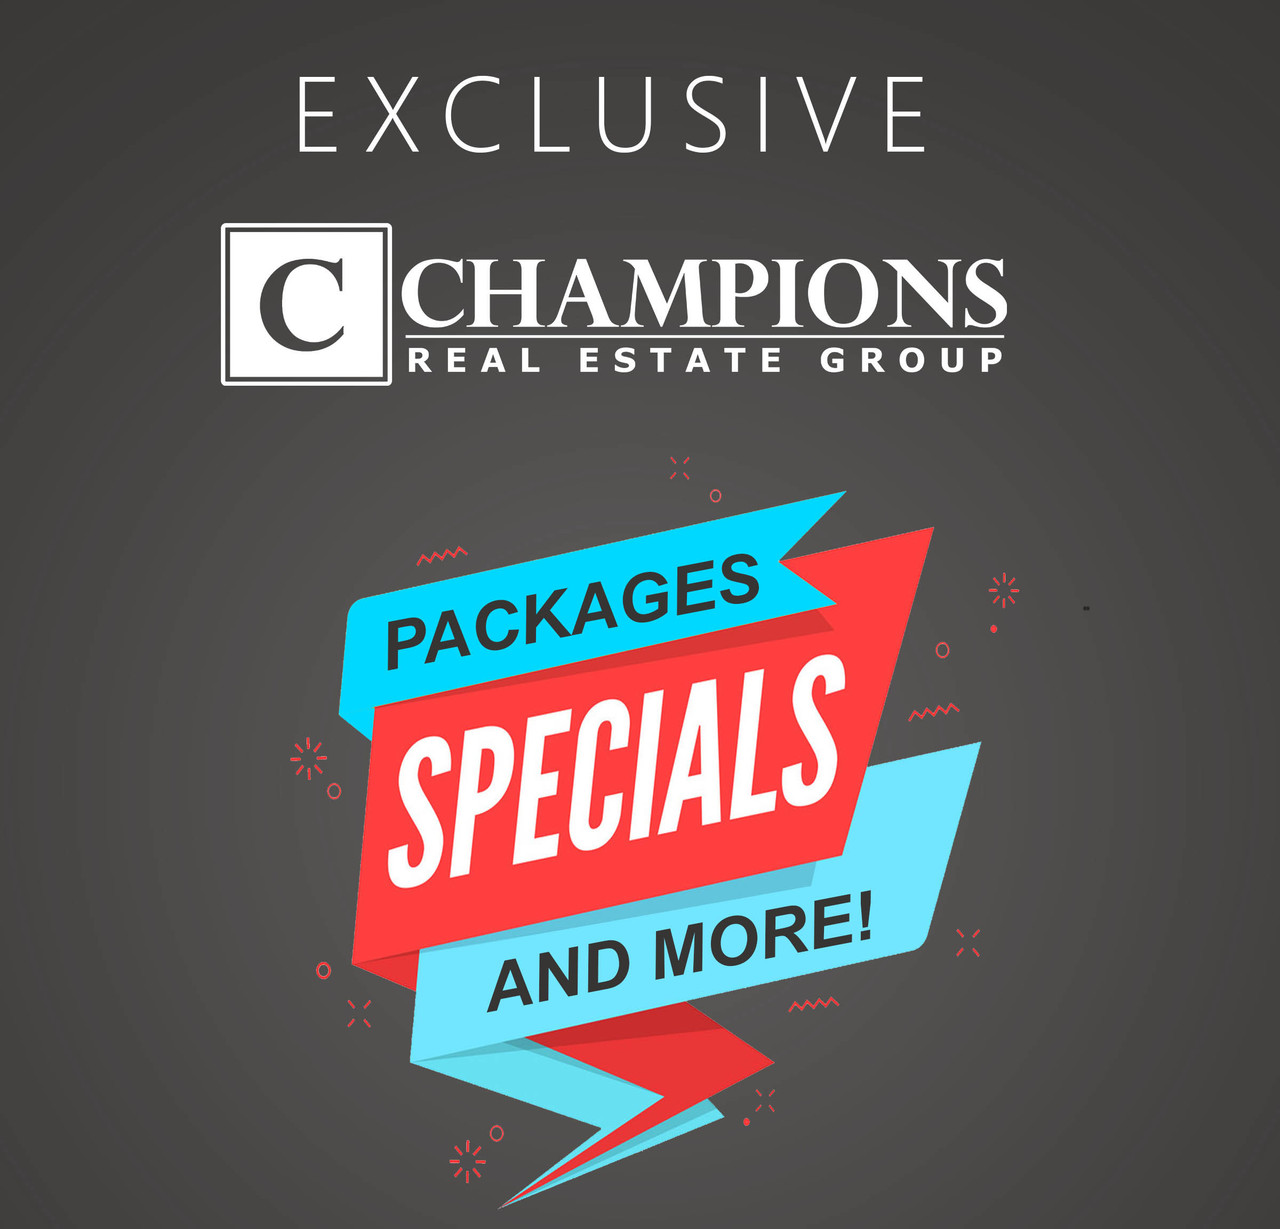 CREG Specials, Packages and More